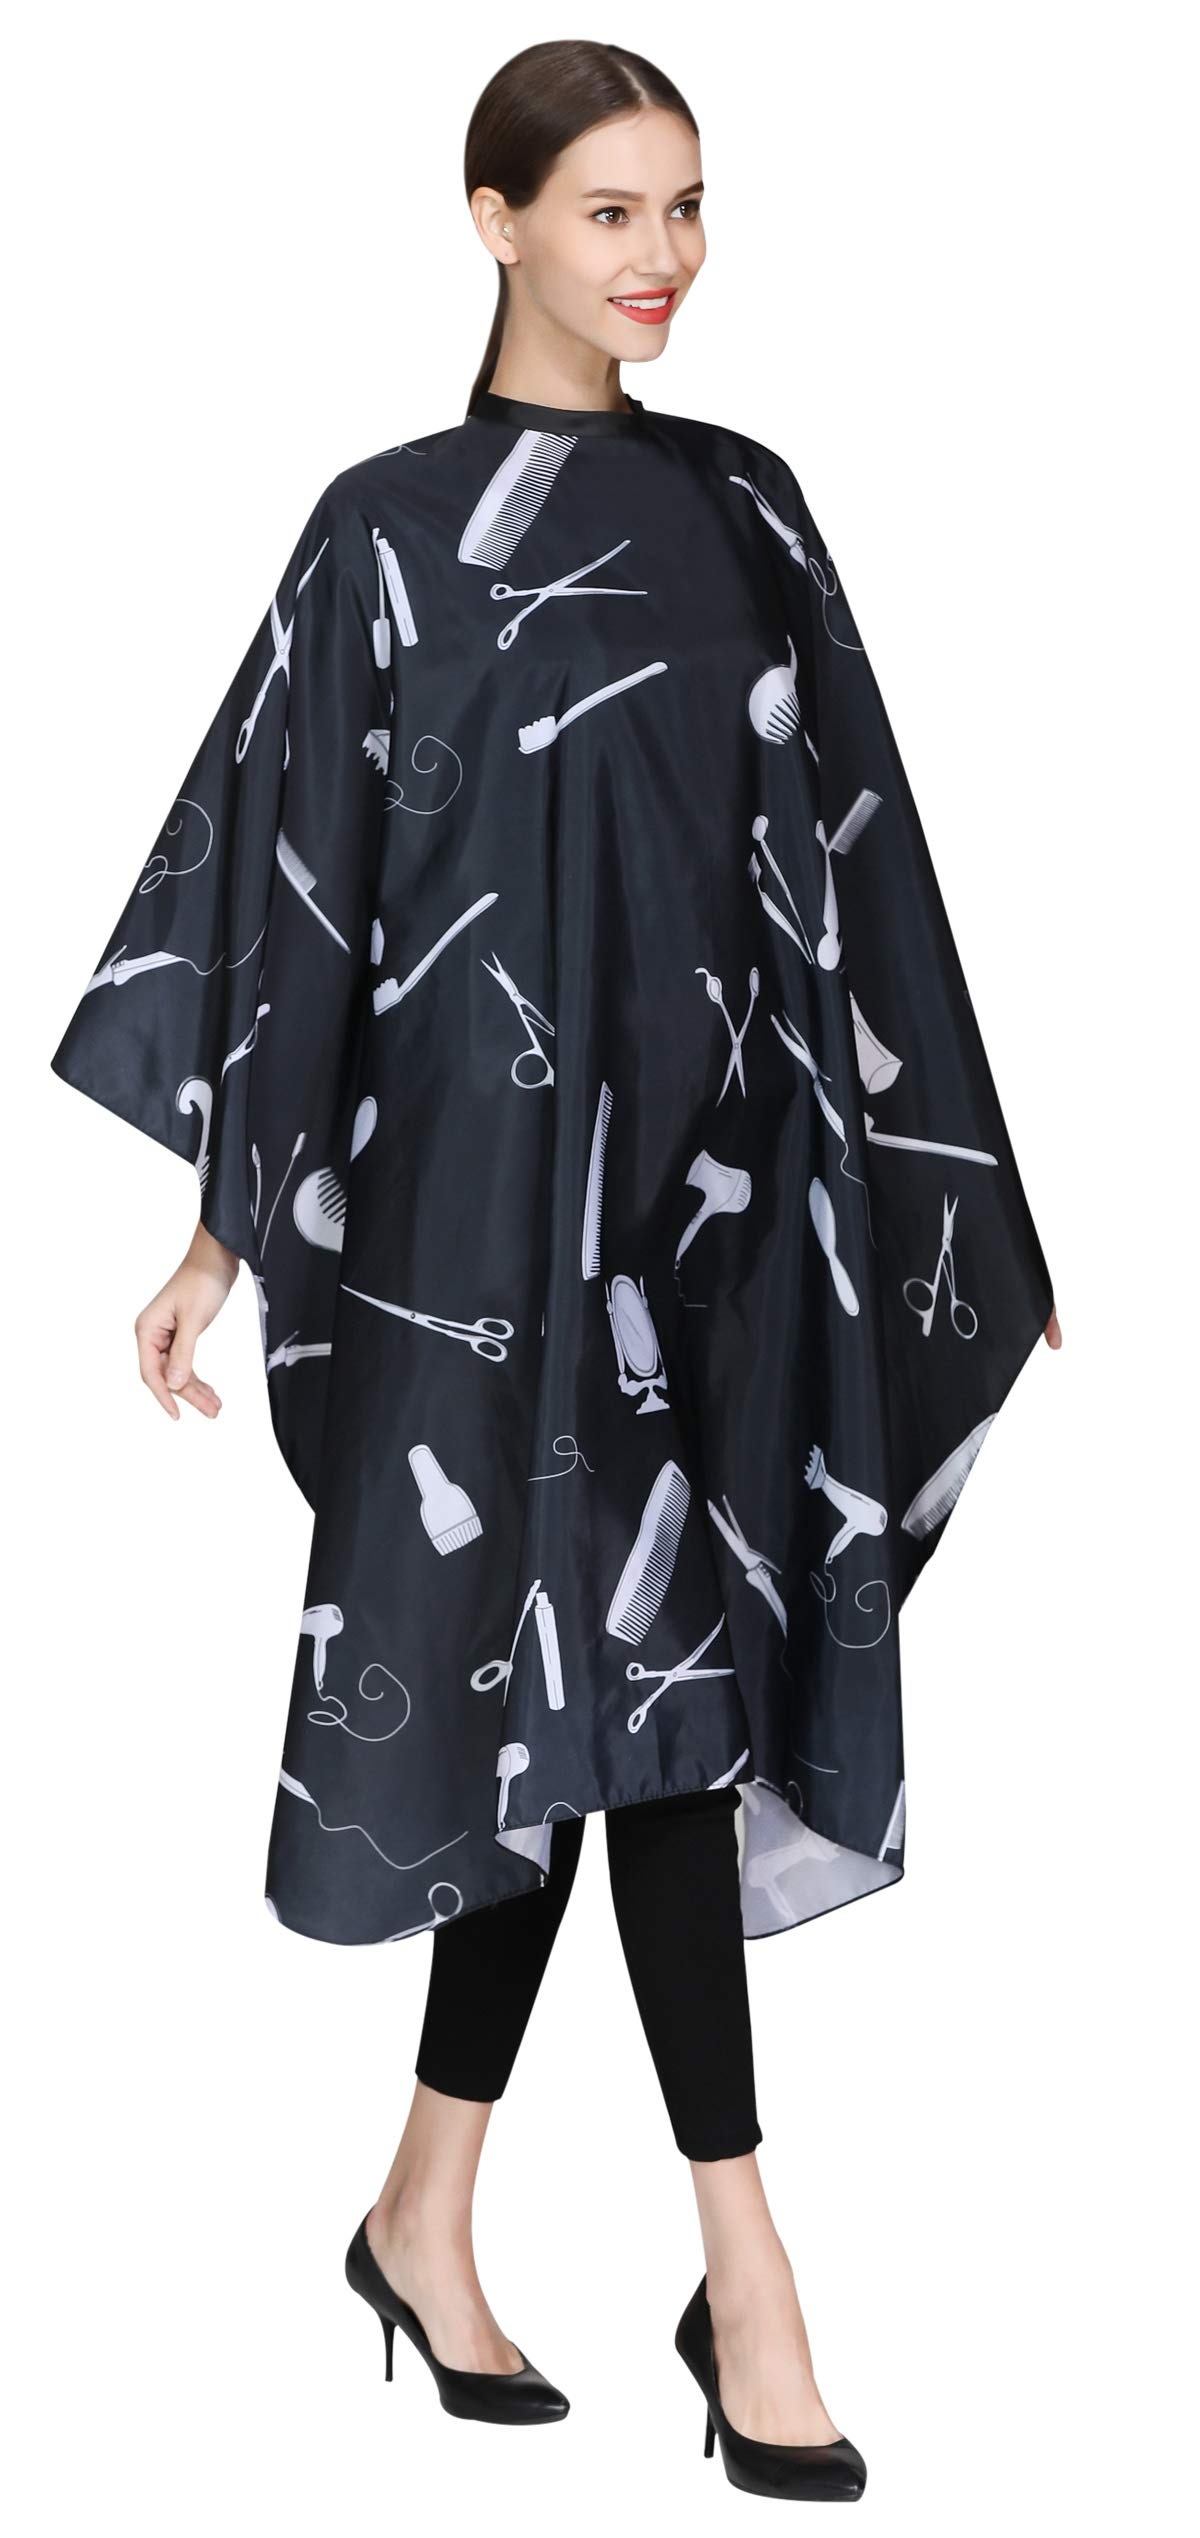 Barber Hair Cutting Cape with Snaps, Salon Hair Styling Cape Cover for Adults Clients-Black by PERFEHAIR